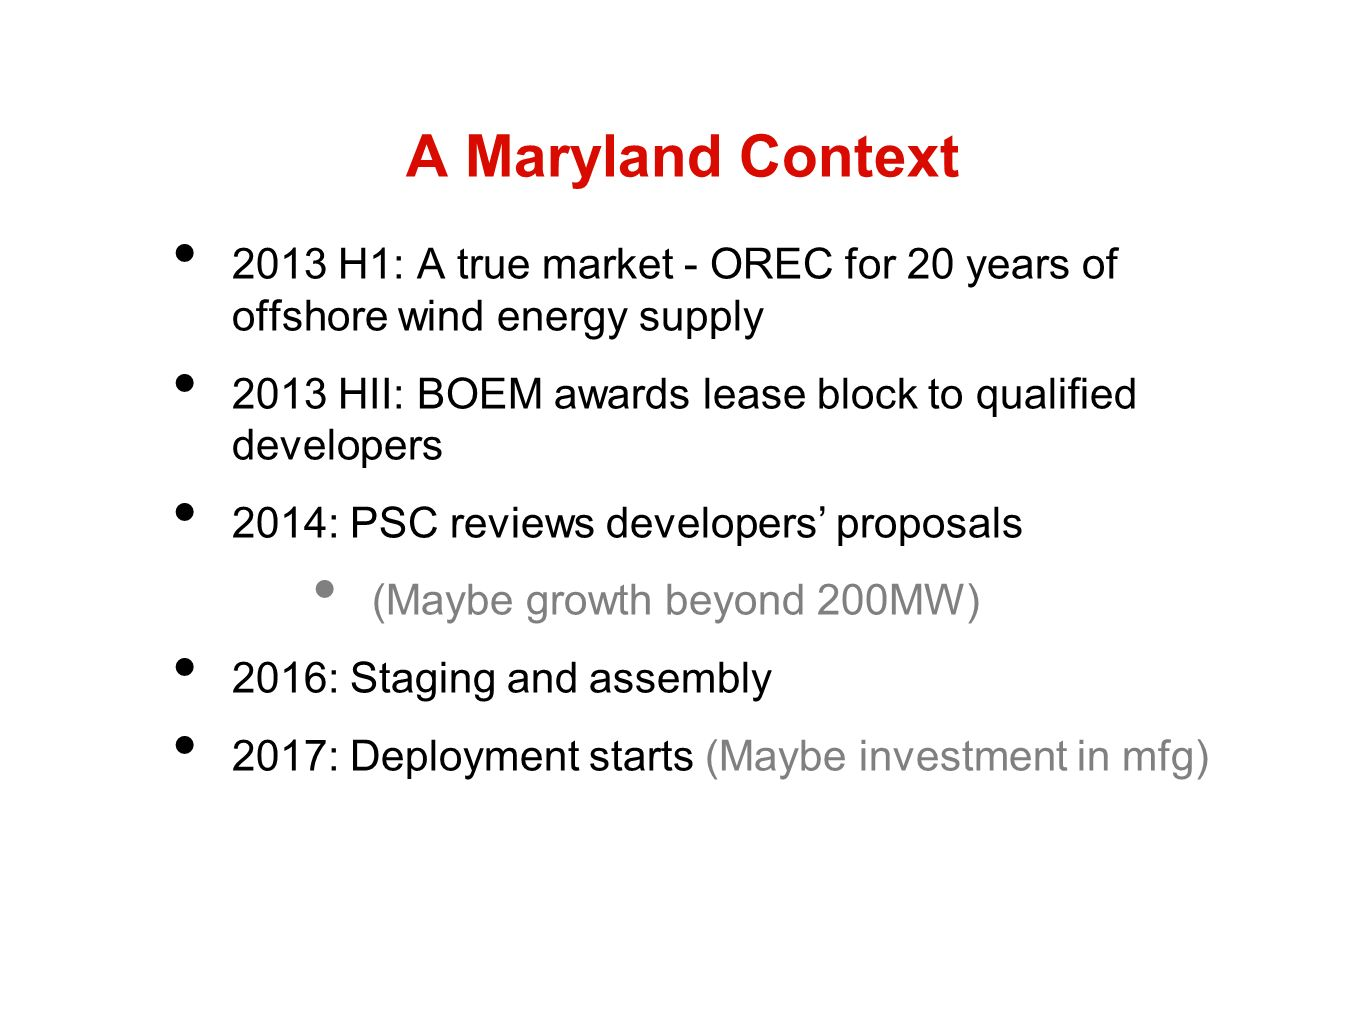 A Maryland Context 2013 H1: A true market - OREC for 20 years of offshore wind energy supply 2013 HII: BOEM awards lease block to qualified developers 2014: PSC reviews developers proposals (Maybe growth beyond 200MW) 2016: Staging and assembly 2017: Deployment starts (Maybe investment in mfg)